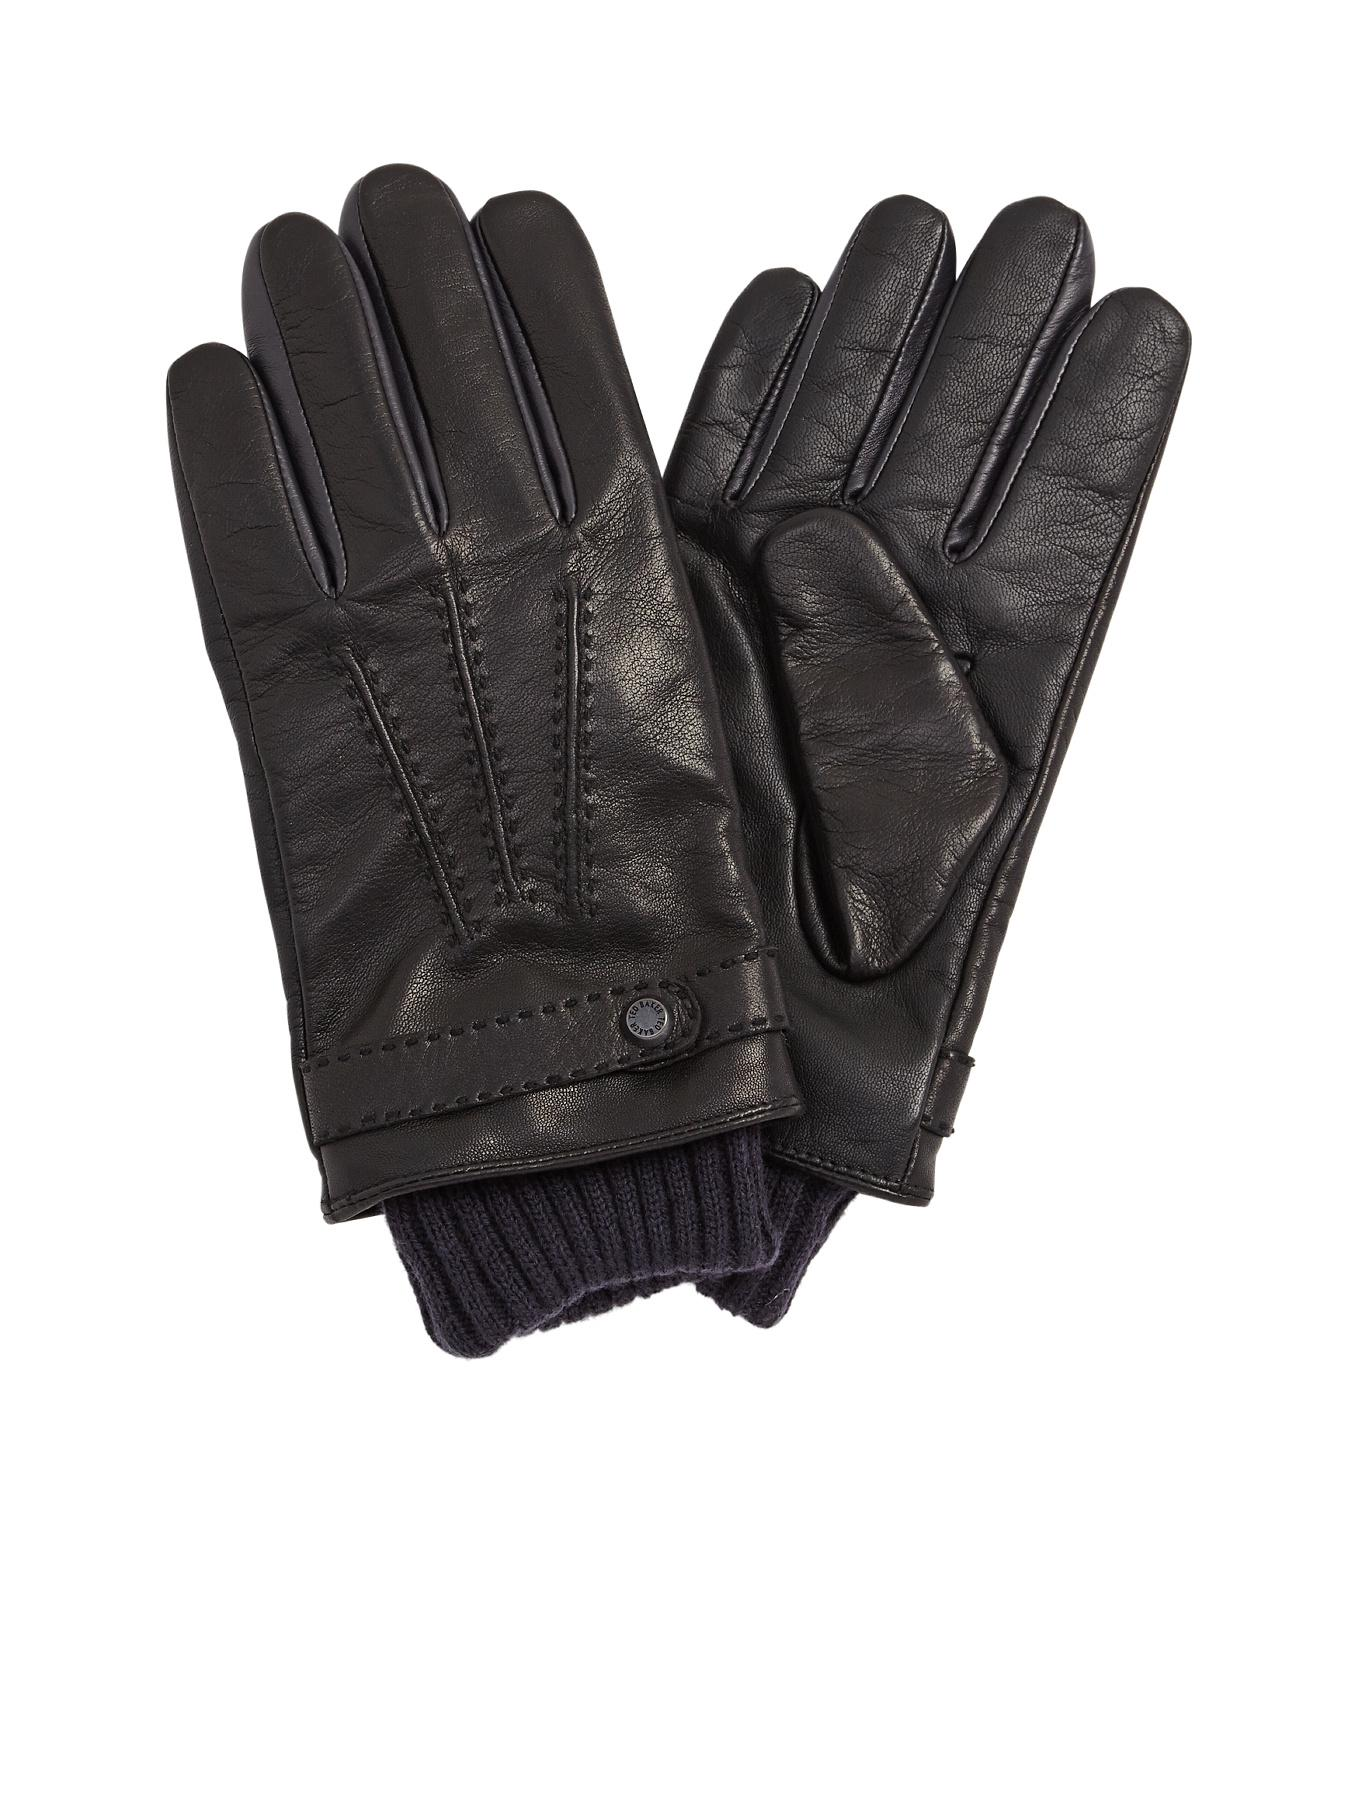 Ted Baker Leather Gloves - Black, Black